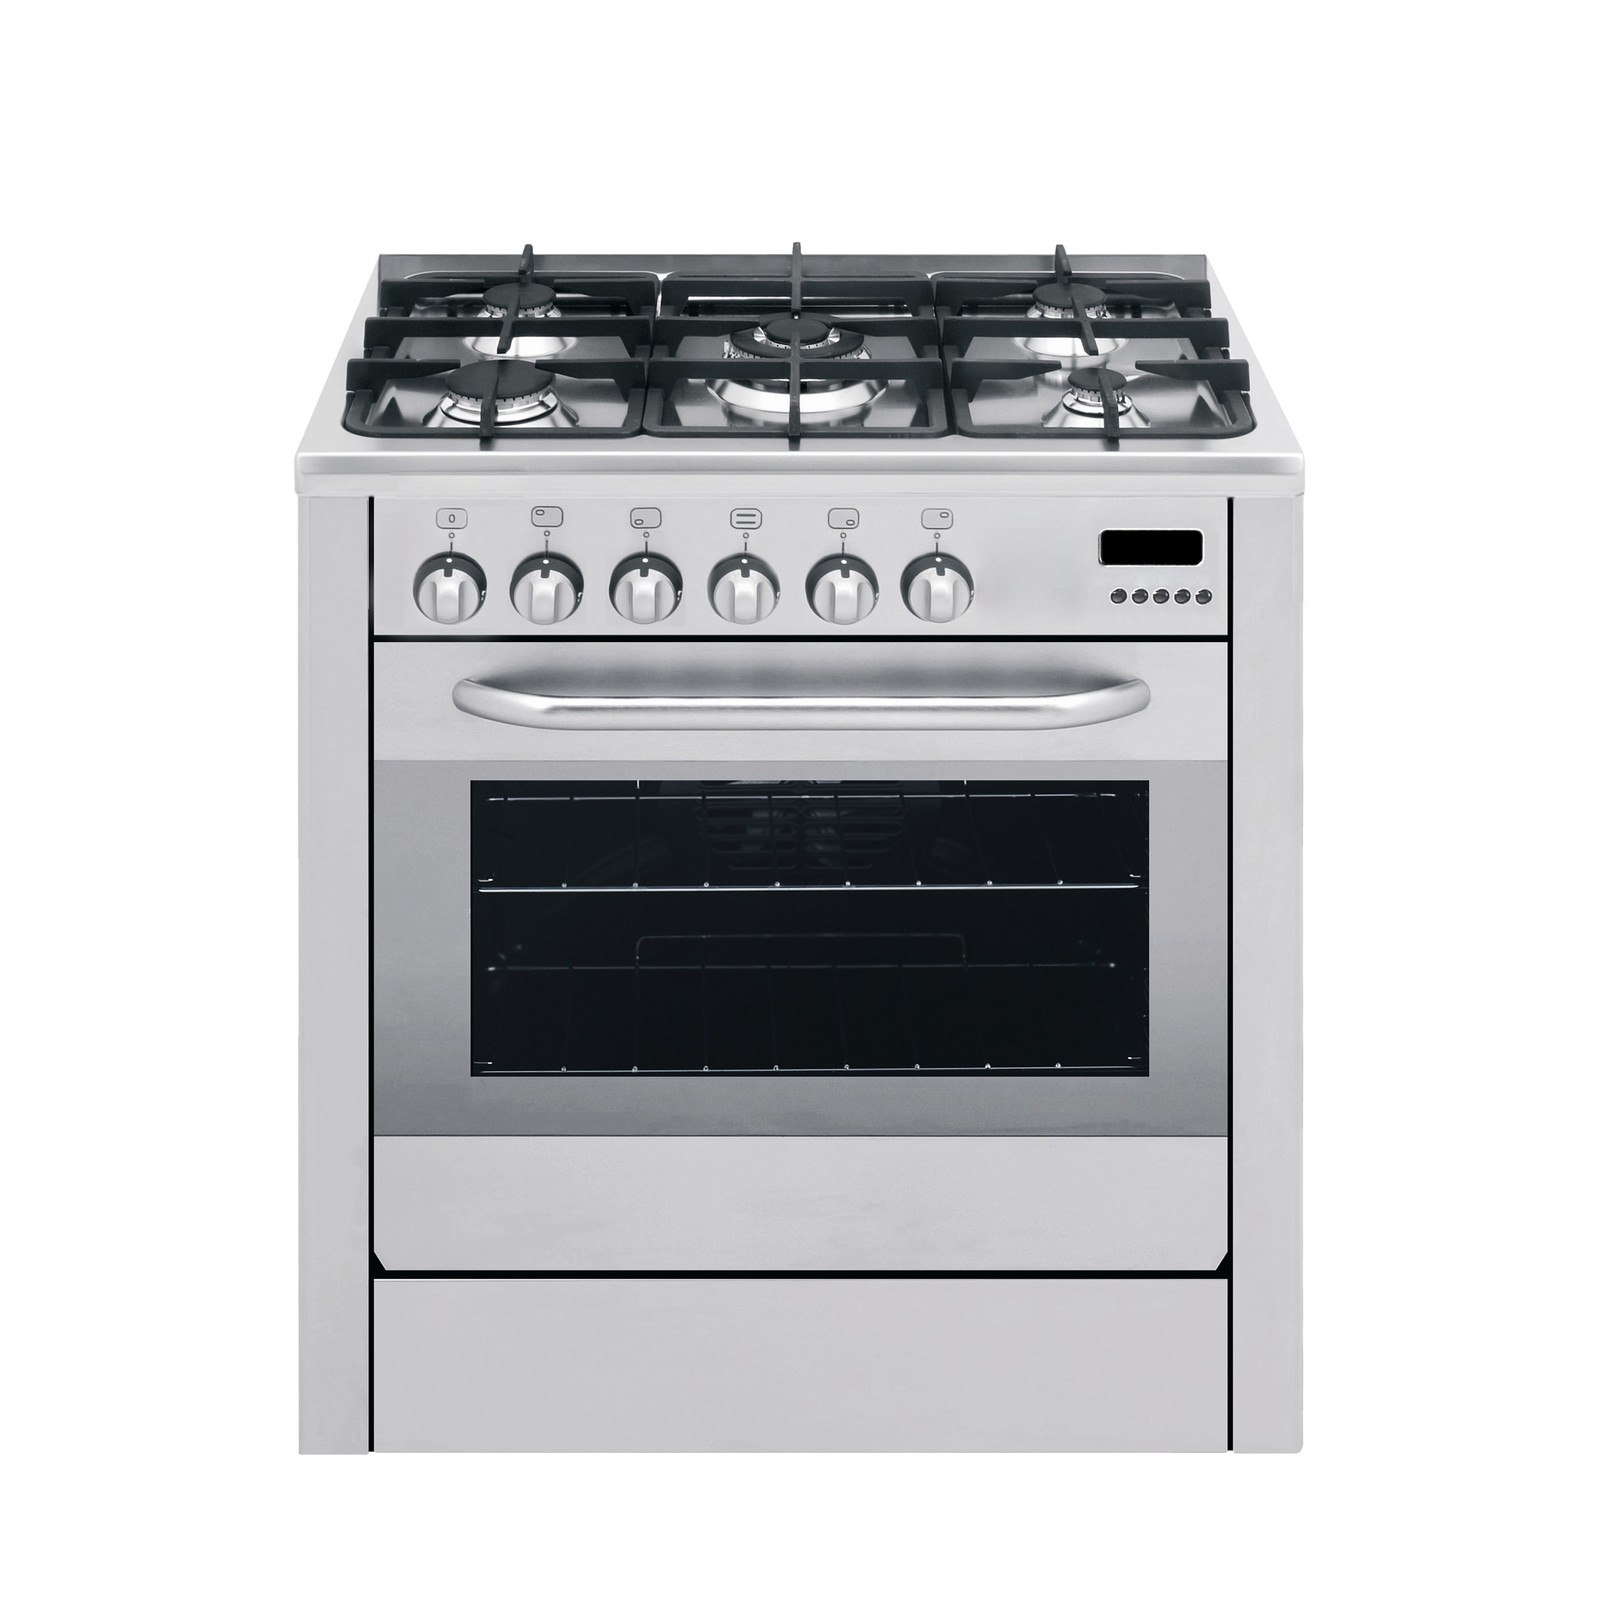 Appliance Repair Technology Experts Ellicott City